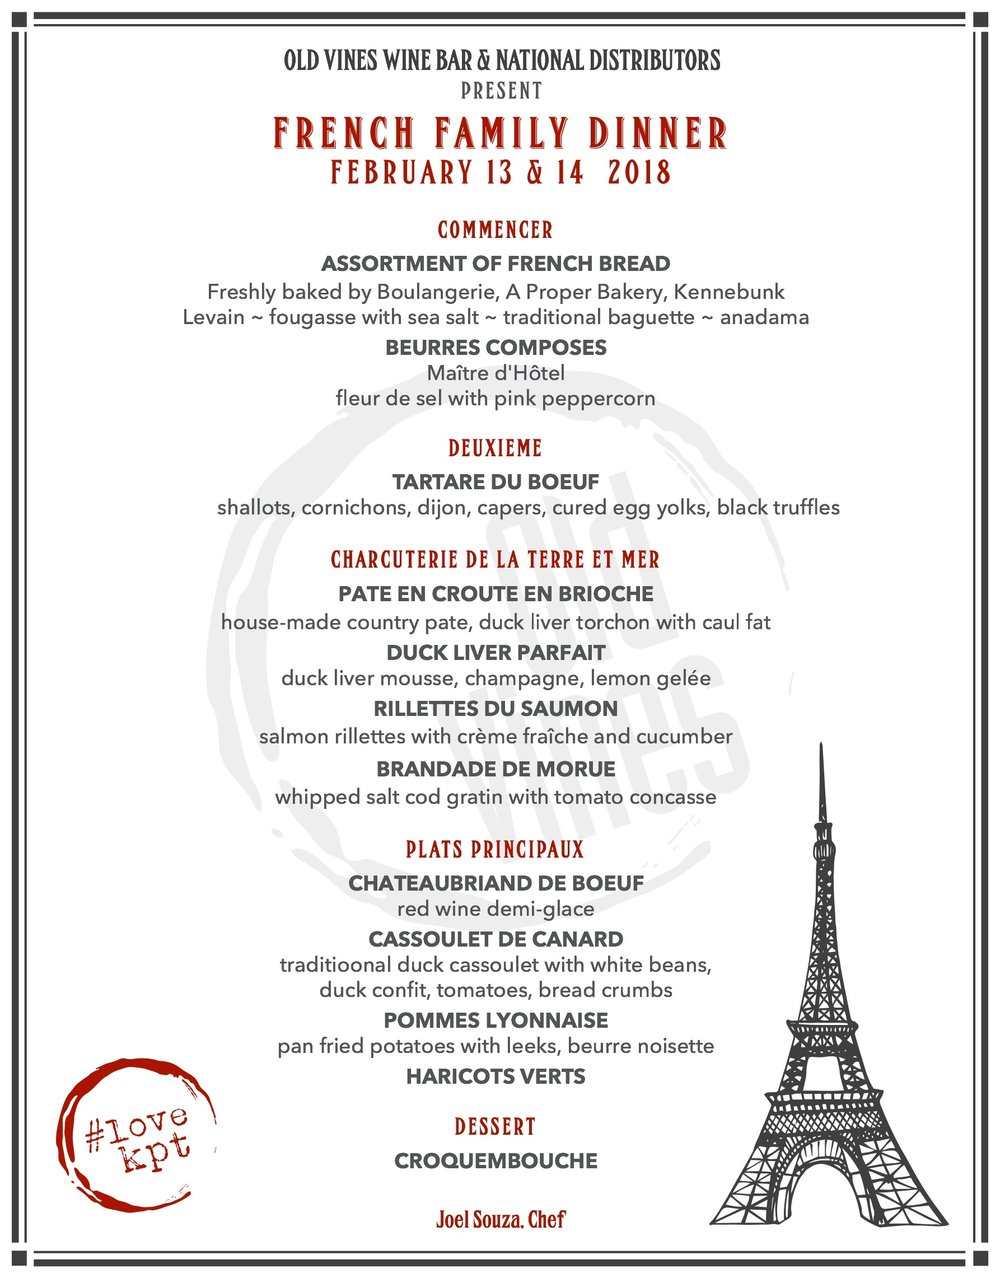 2018 French Fam Dinner menu.jpg